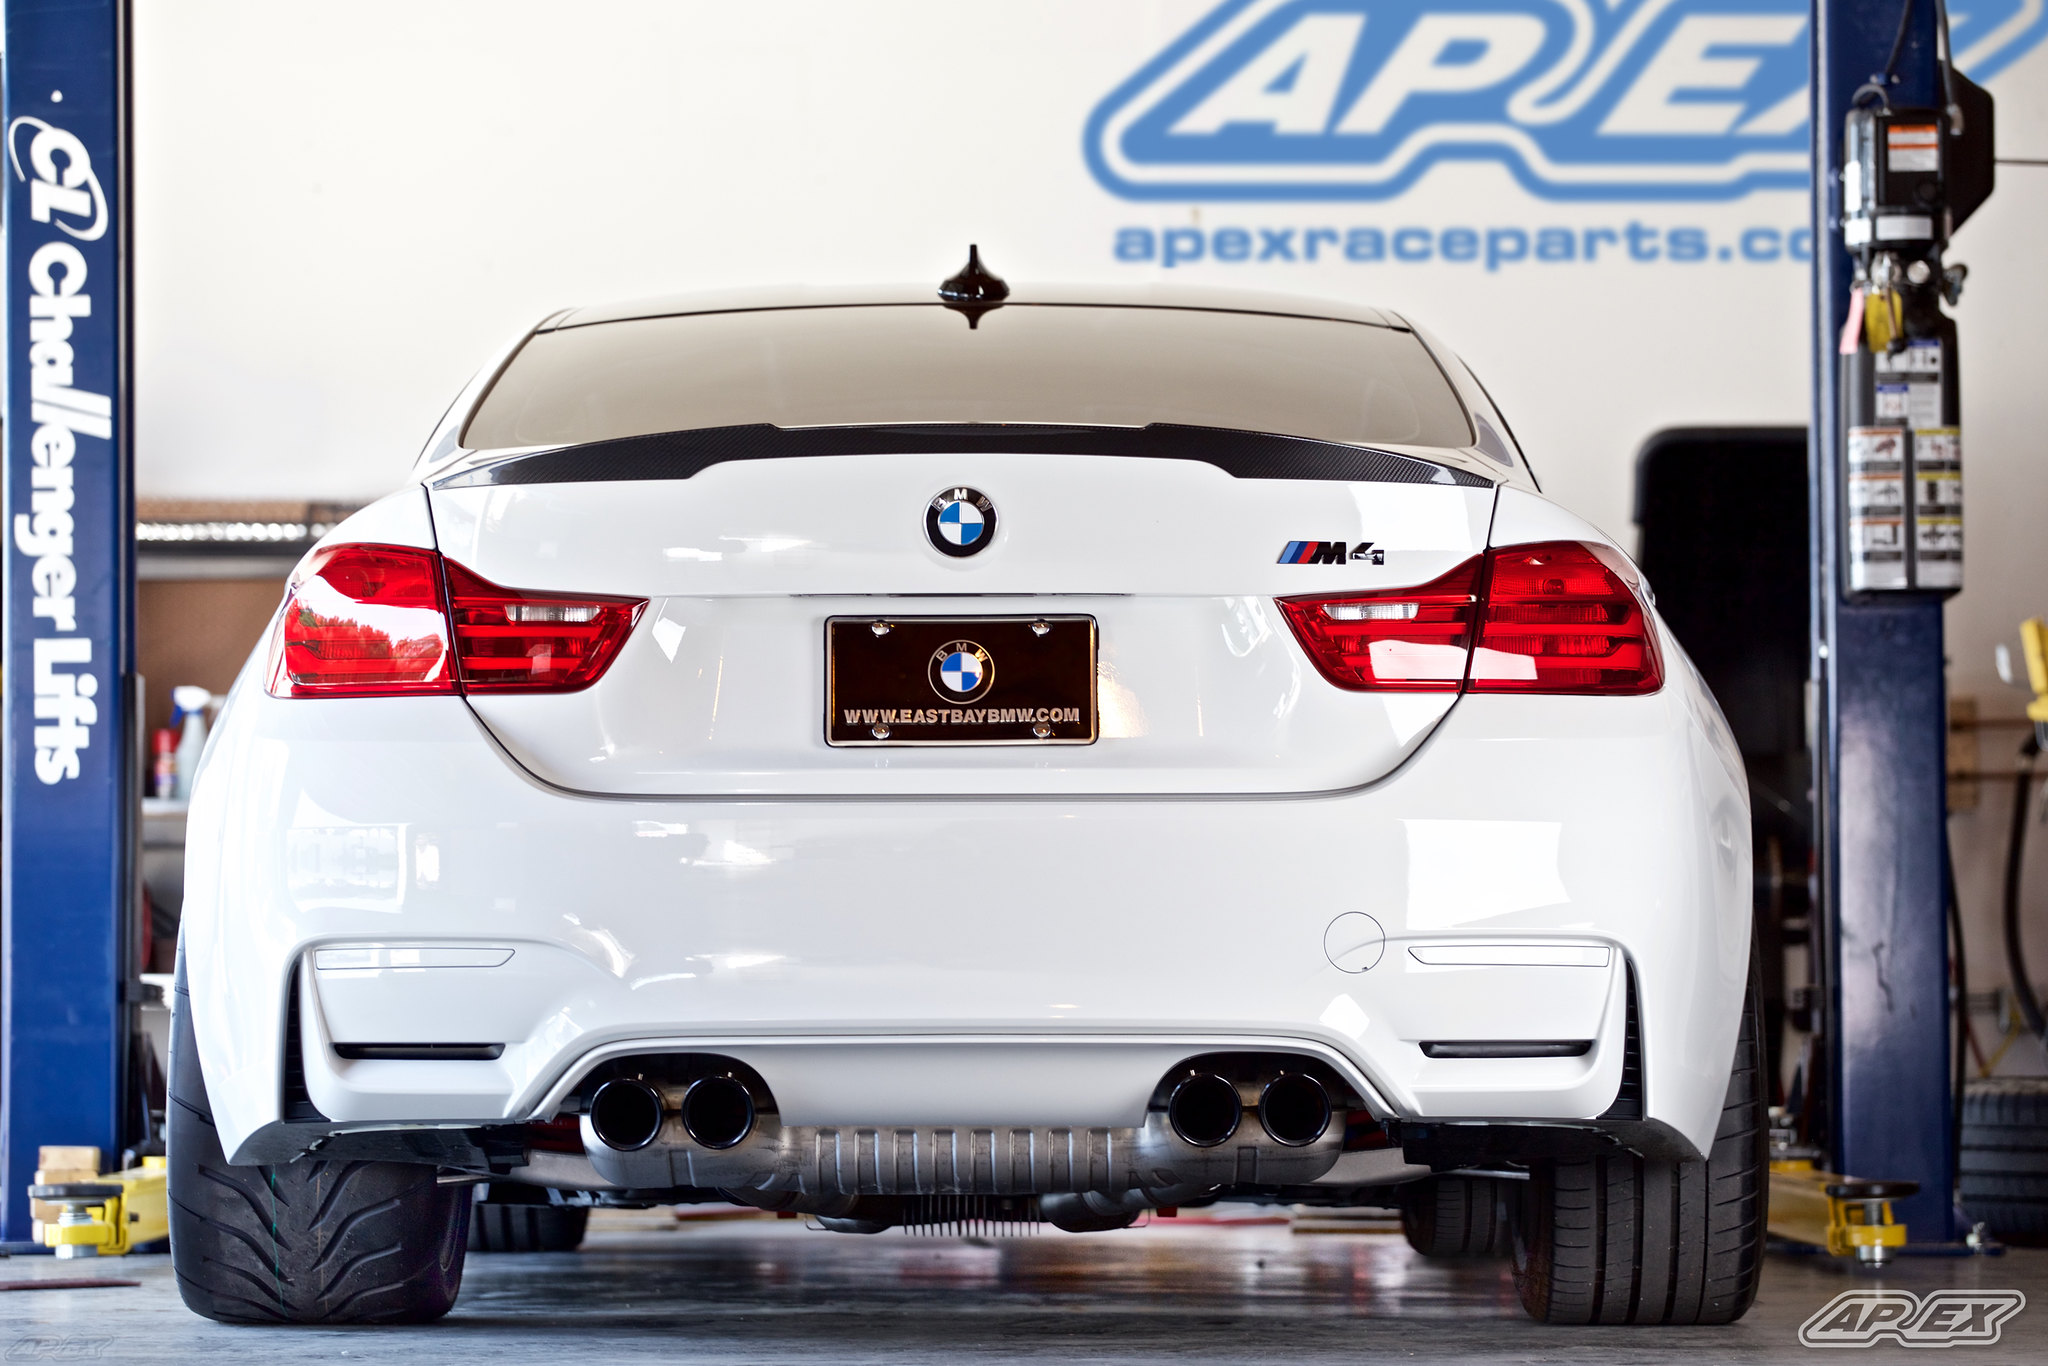 BMW F8X M4 APEX 18 Inch EC-7 Wheel Test Fit